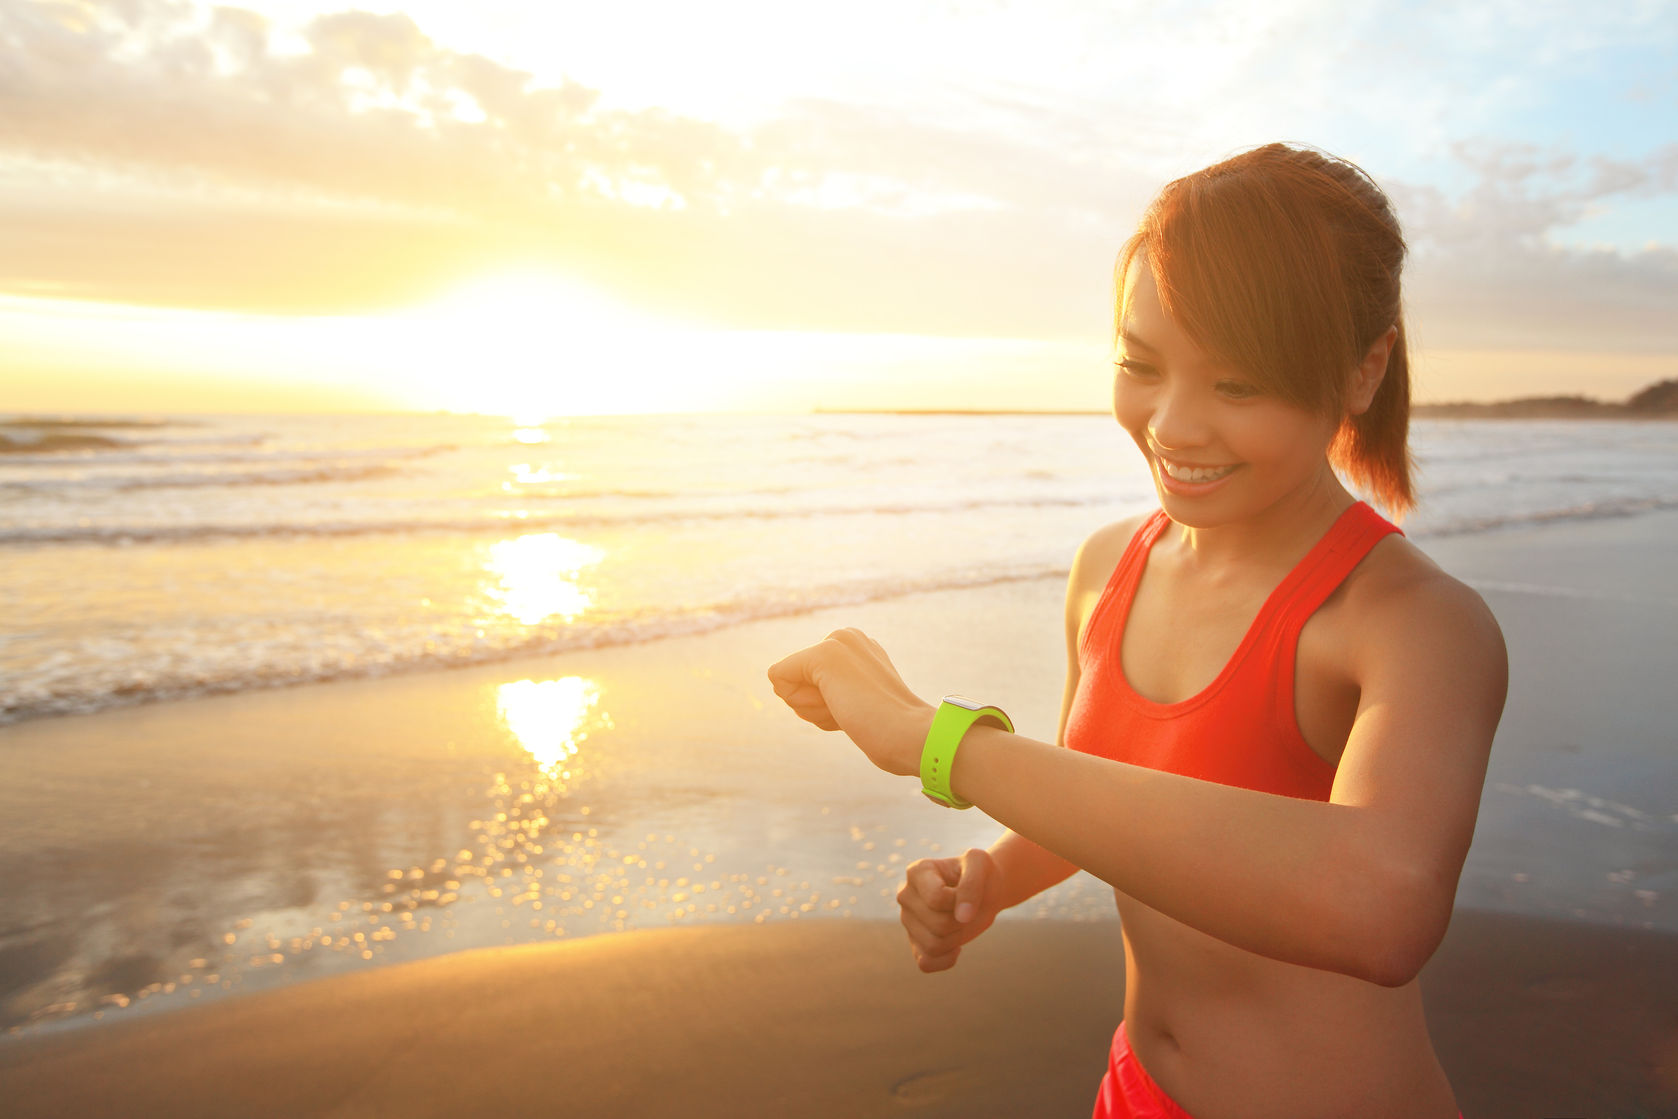 woman with fitness watch exercising on beach shore